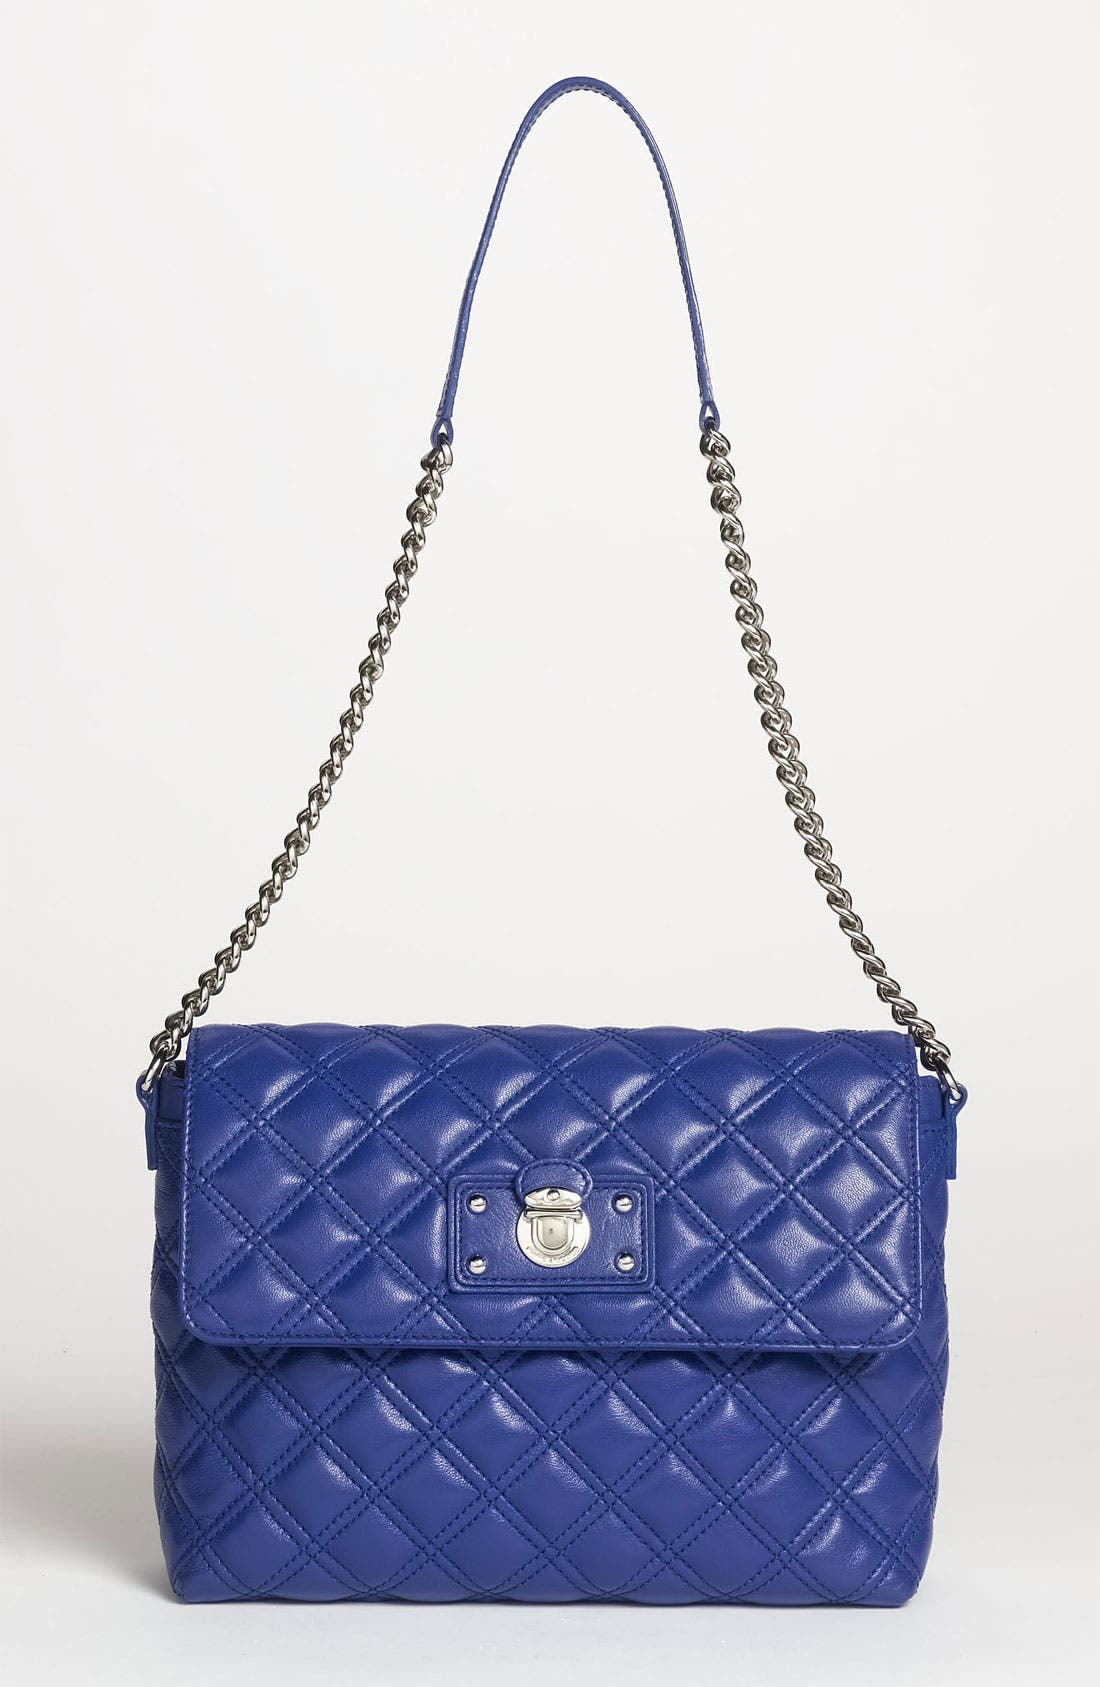 Alternate Image 1 Selected - MARC JACOBS 'Quilting - Large Single' Leather Shoulder Bag